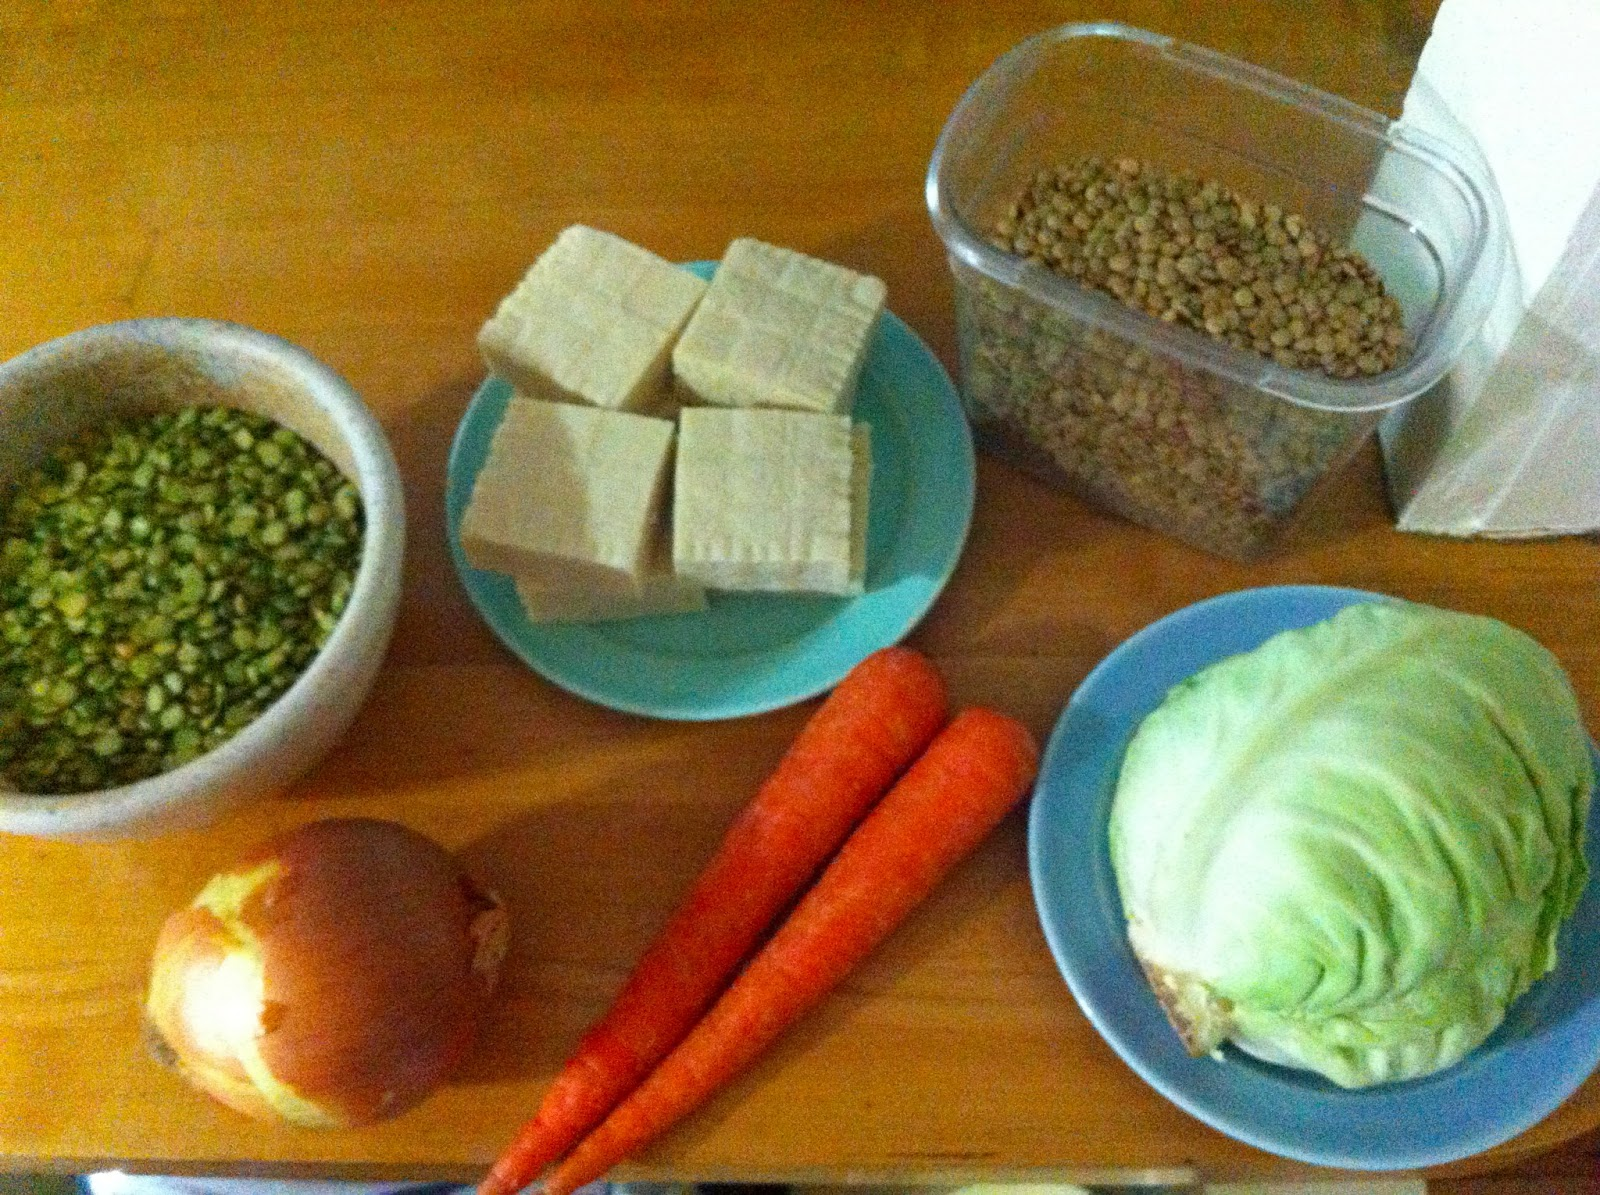 Image of lentils, peas, tofu, cabbage, onion, and carrot to be eaten over 5 days.